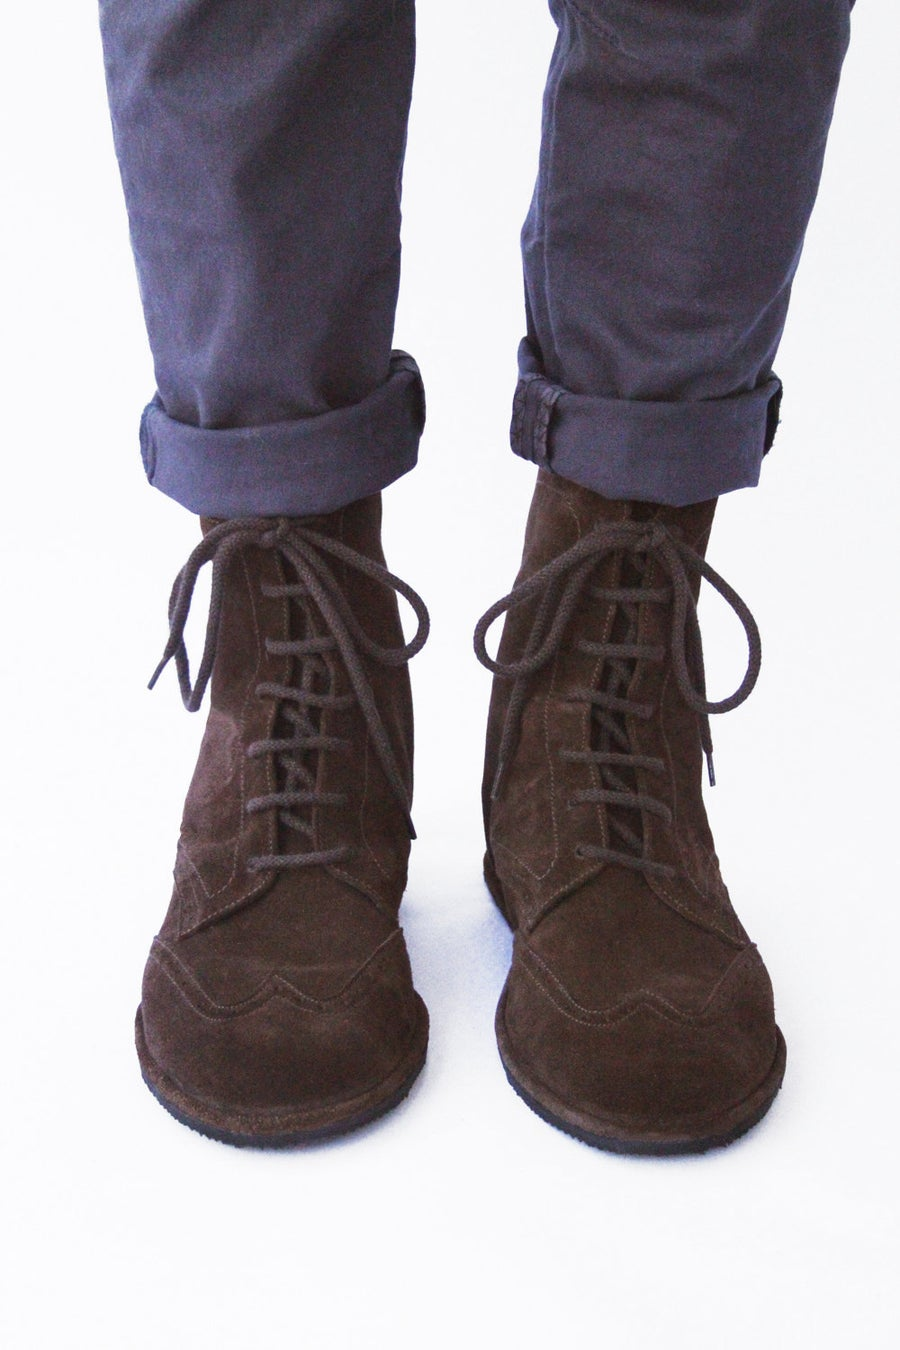 Image of Lace up boots - Brogued Wingtip in Dark Brown Suede